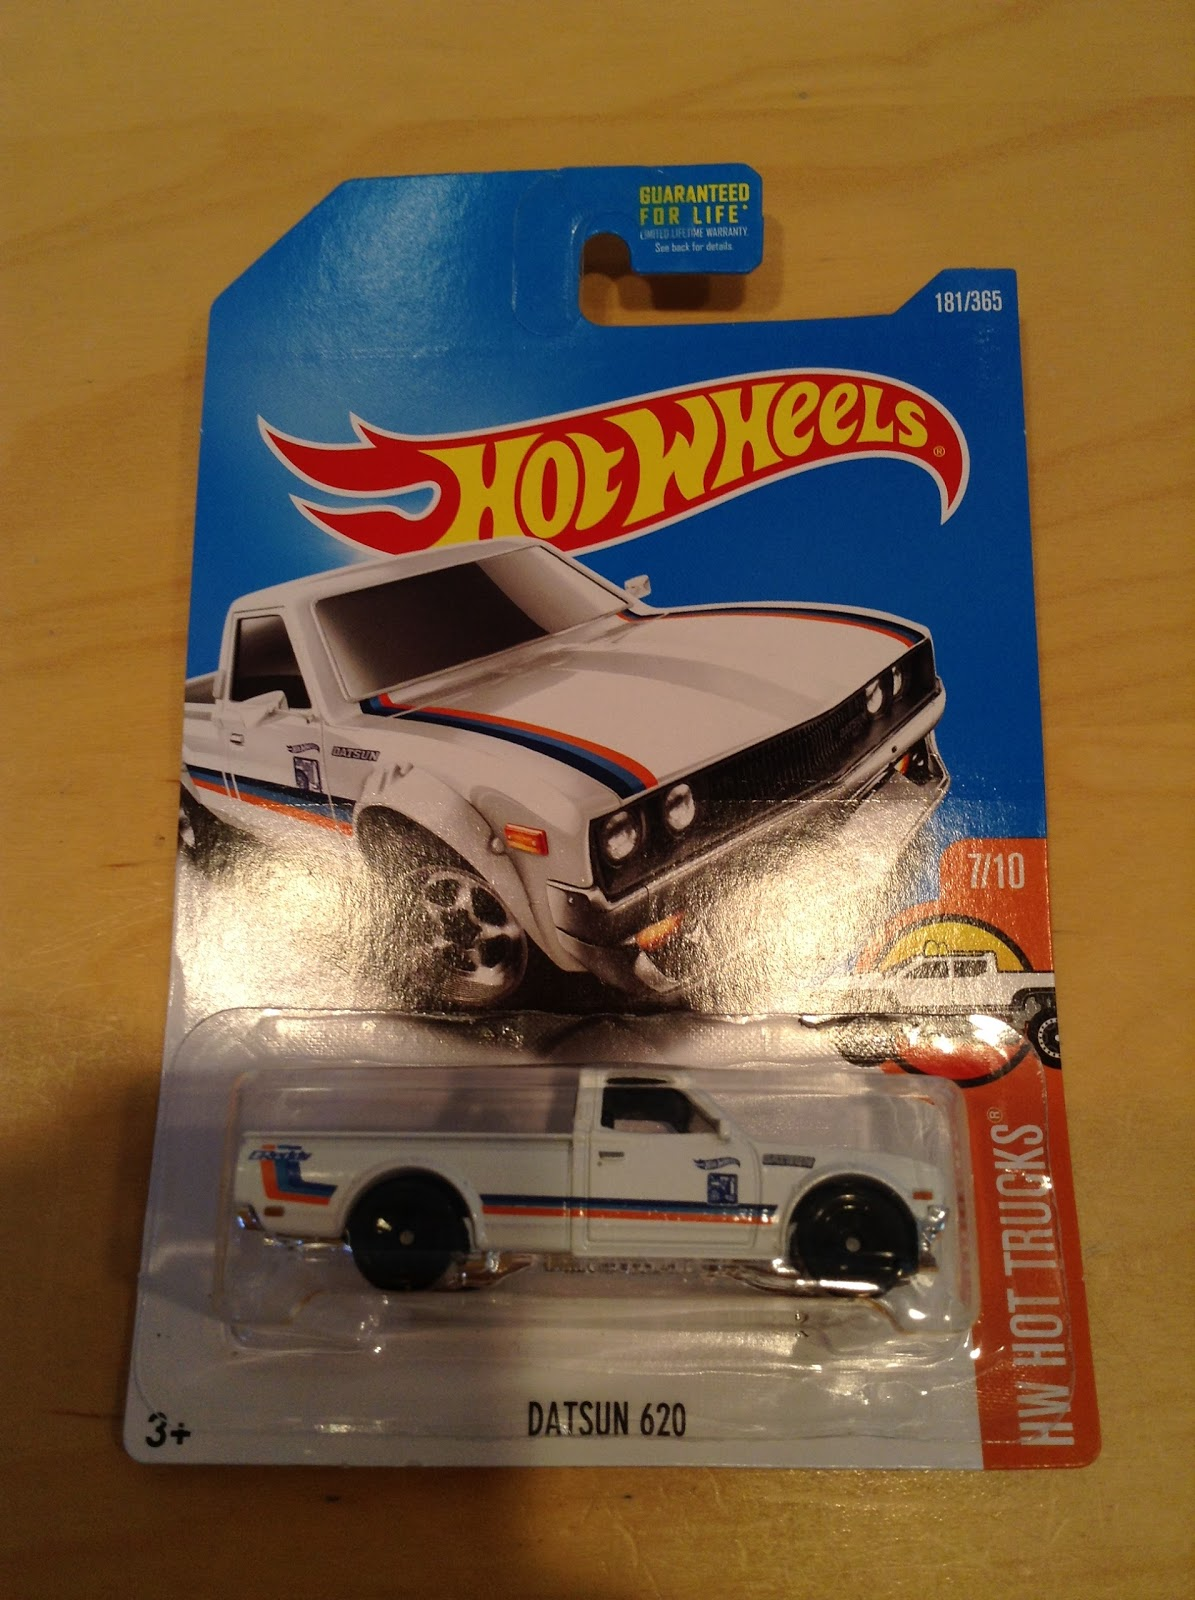 Julians Hot Wheels Blog Datsun 620 2017 Hw Trucks Hotwheels Red This Truck Looks Awesome In White With Black Rims What Do You Think Id Say The Presentation Is Superb Posted By